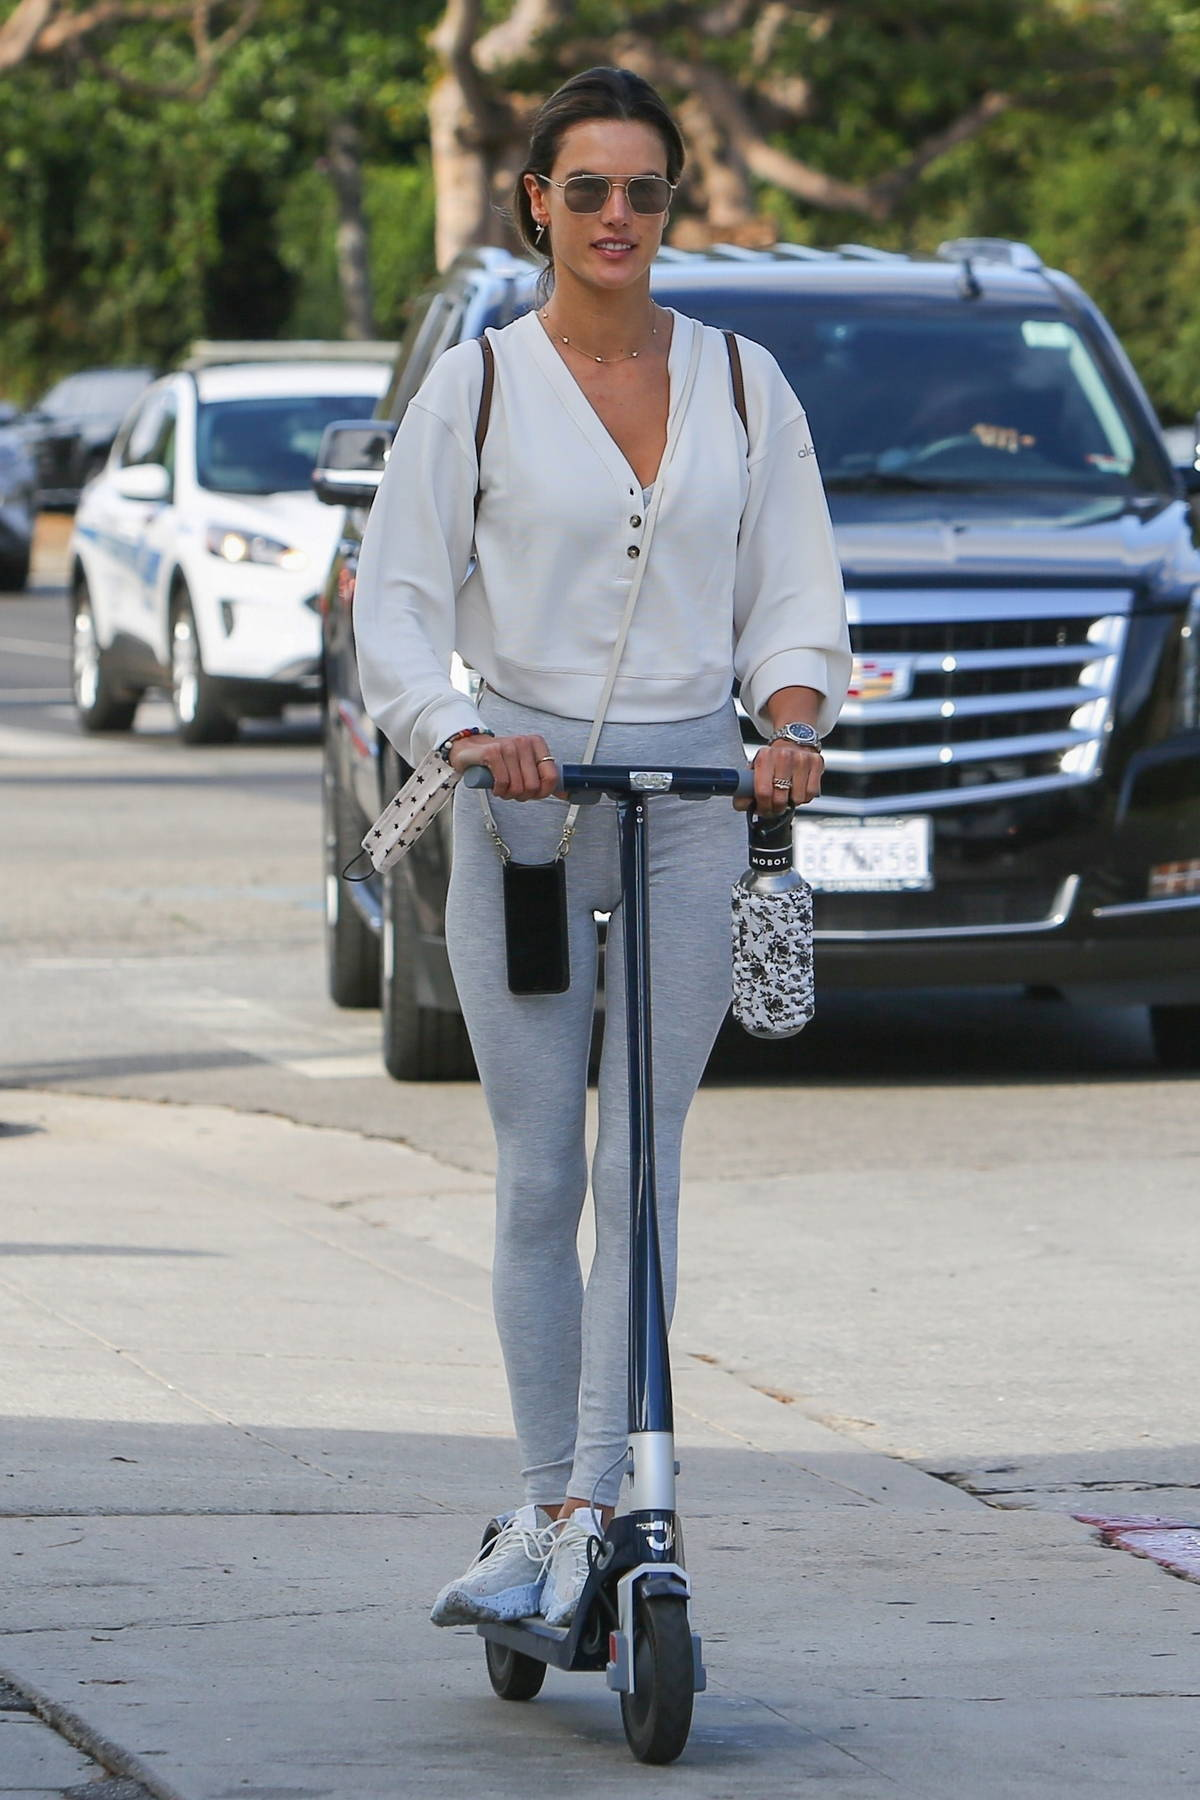 Alessandra Ambrosio looks amazing in a white blouse and grey leggings while riding a scooter to the gym in Brentwood, California